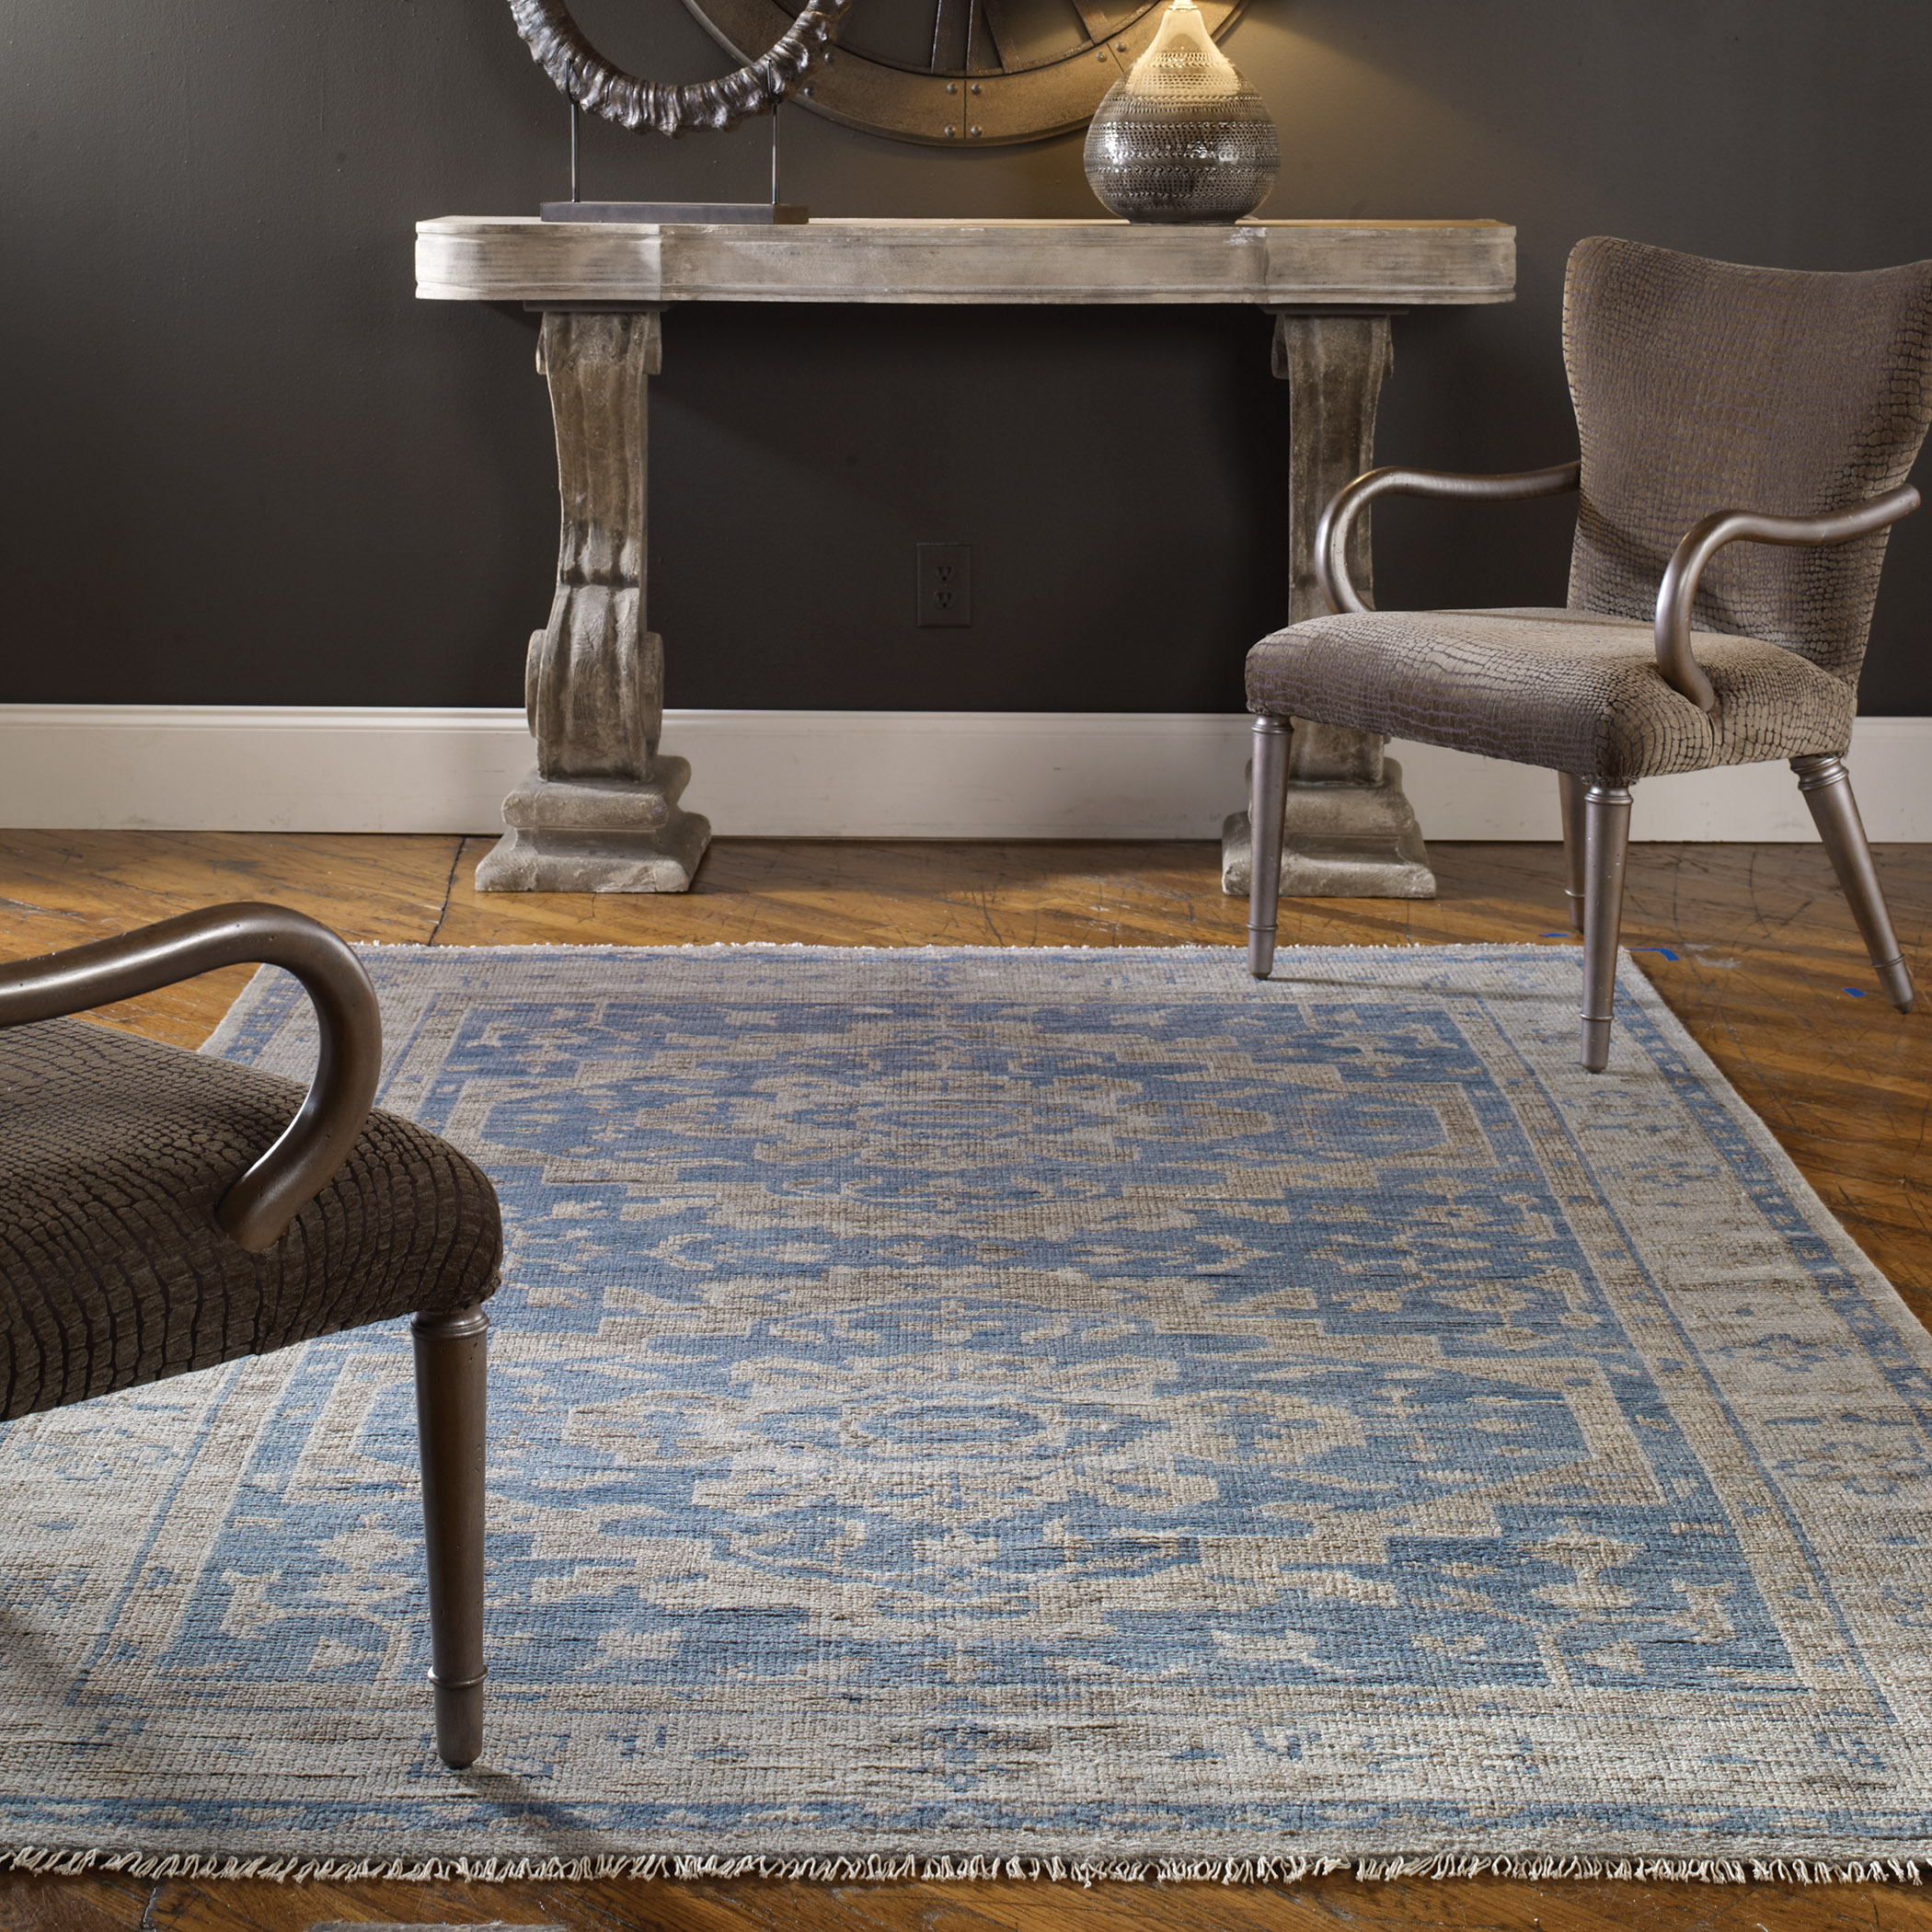 Uttermost Rugs Adana 6 X 9 Rug - Blue - Item Number: 70024-6